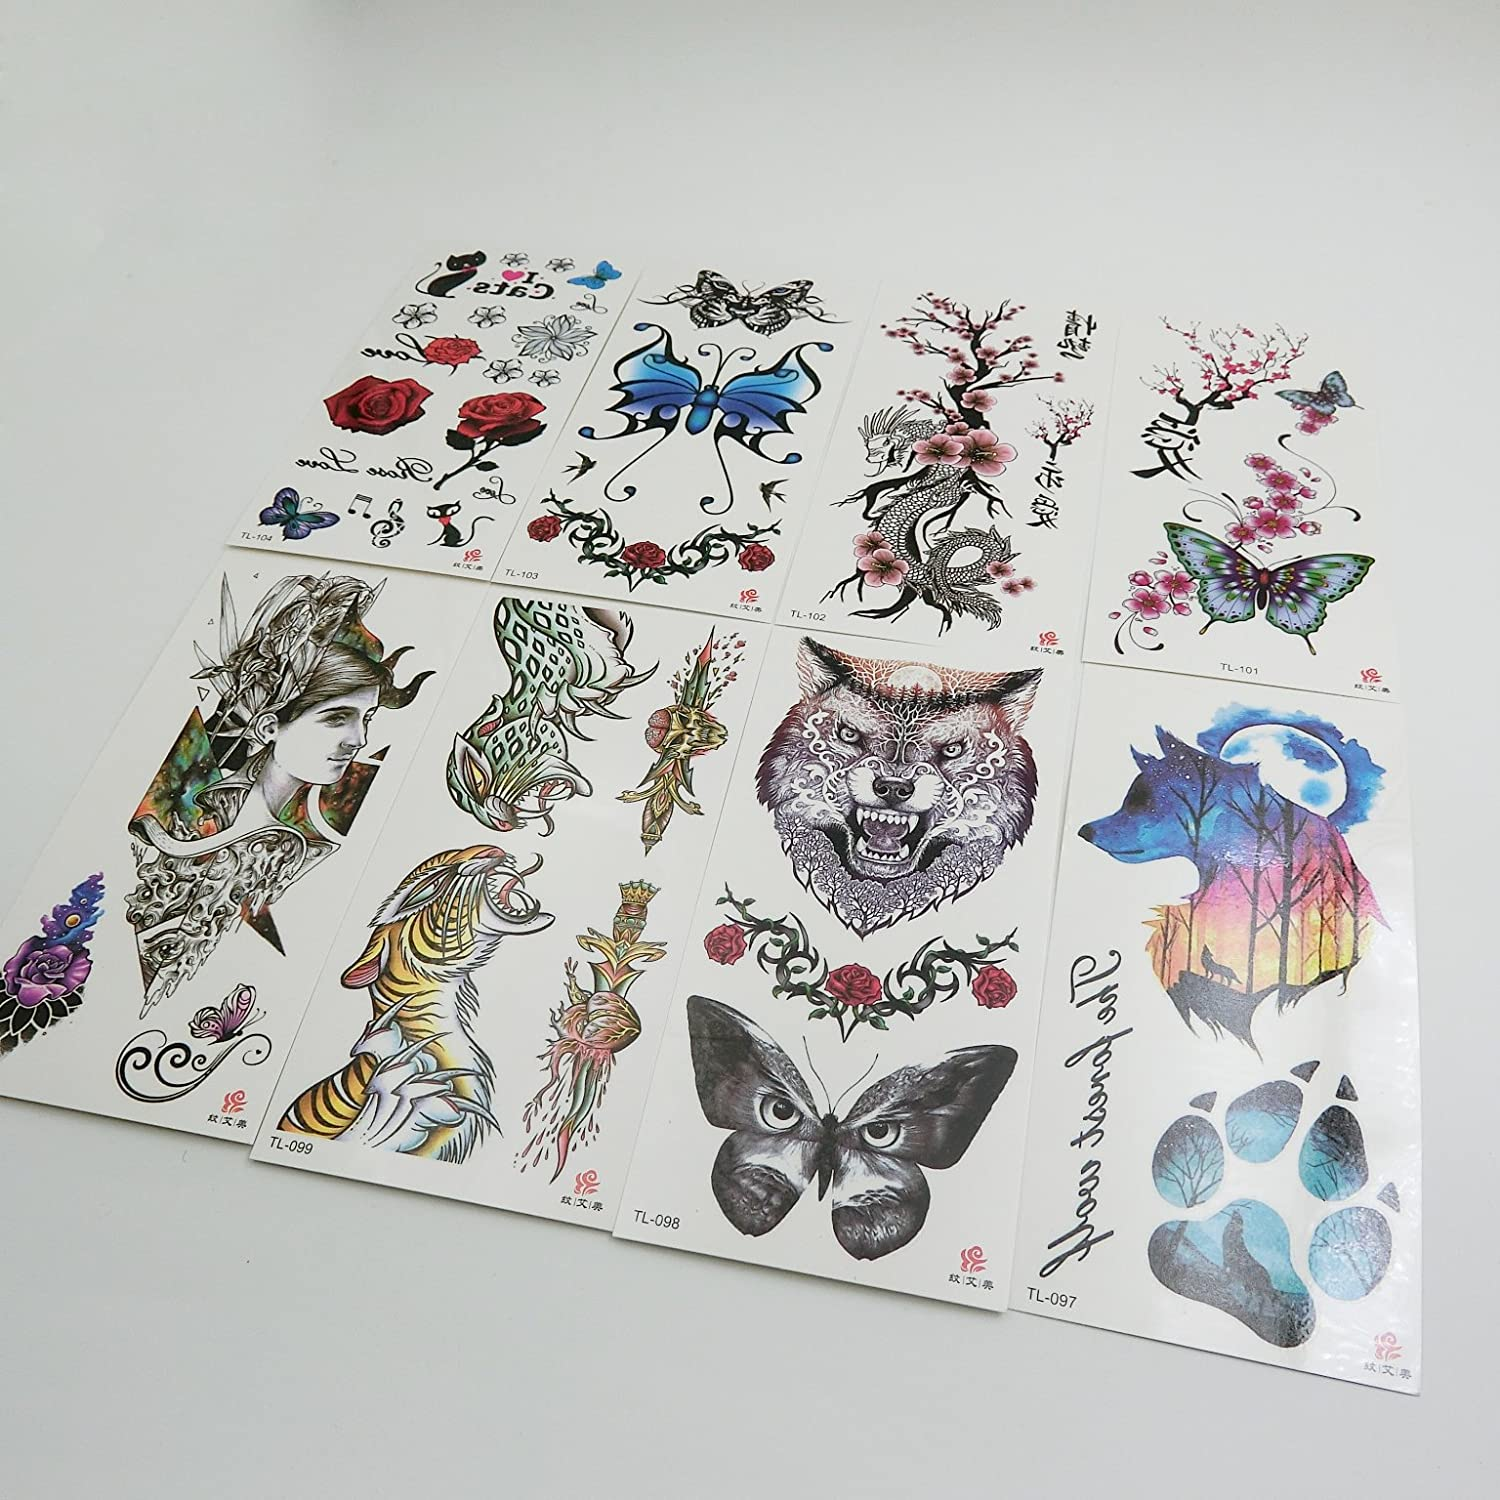 87c14d781 Amazon.com : Oottati 8 Sheets Temporary Tattoo 3D Stickers Hand Ankle Wolf  Footprint Butterfly Tiger Rose : Beauty